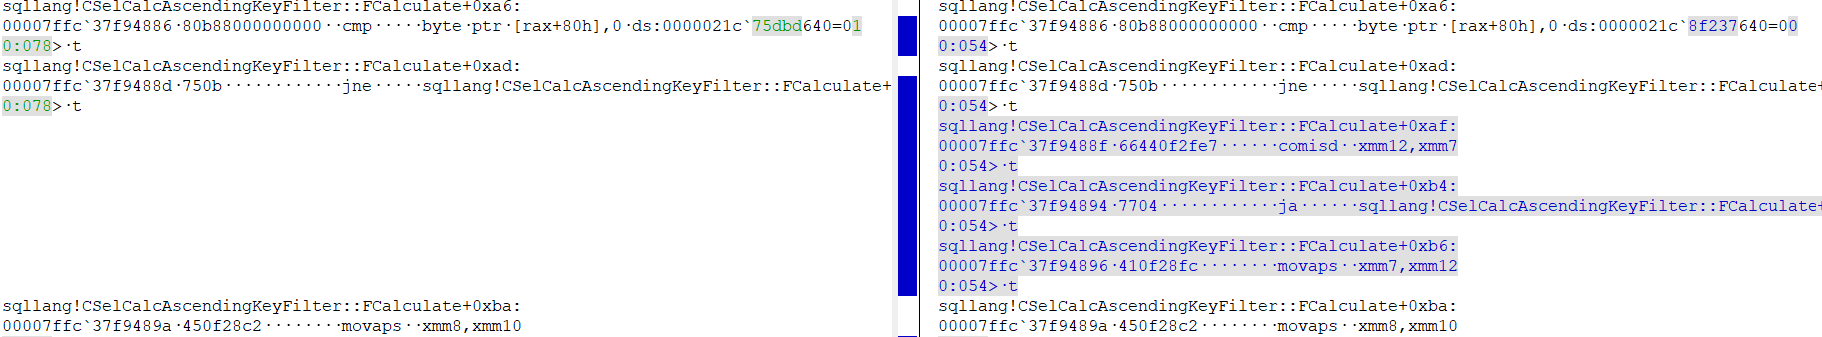 screenshot of KDiff3 showing two different sets of assembly code